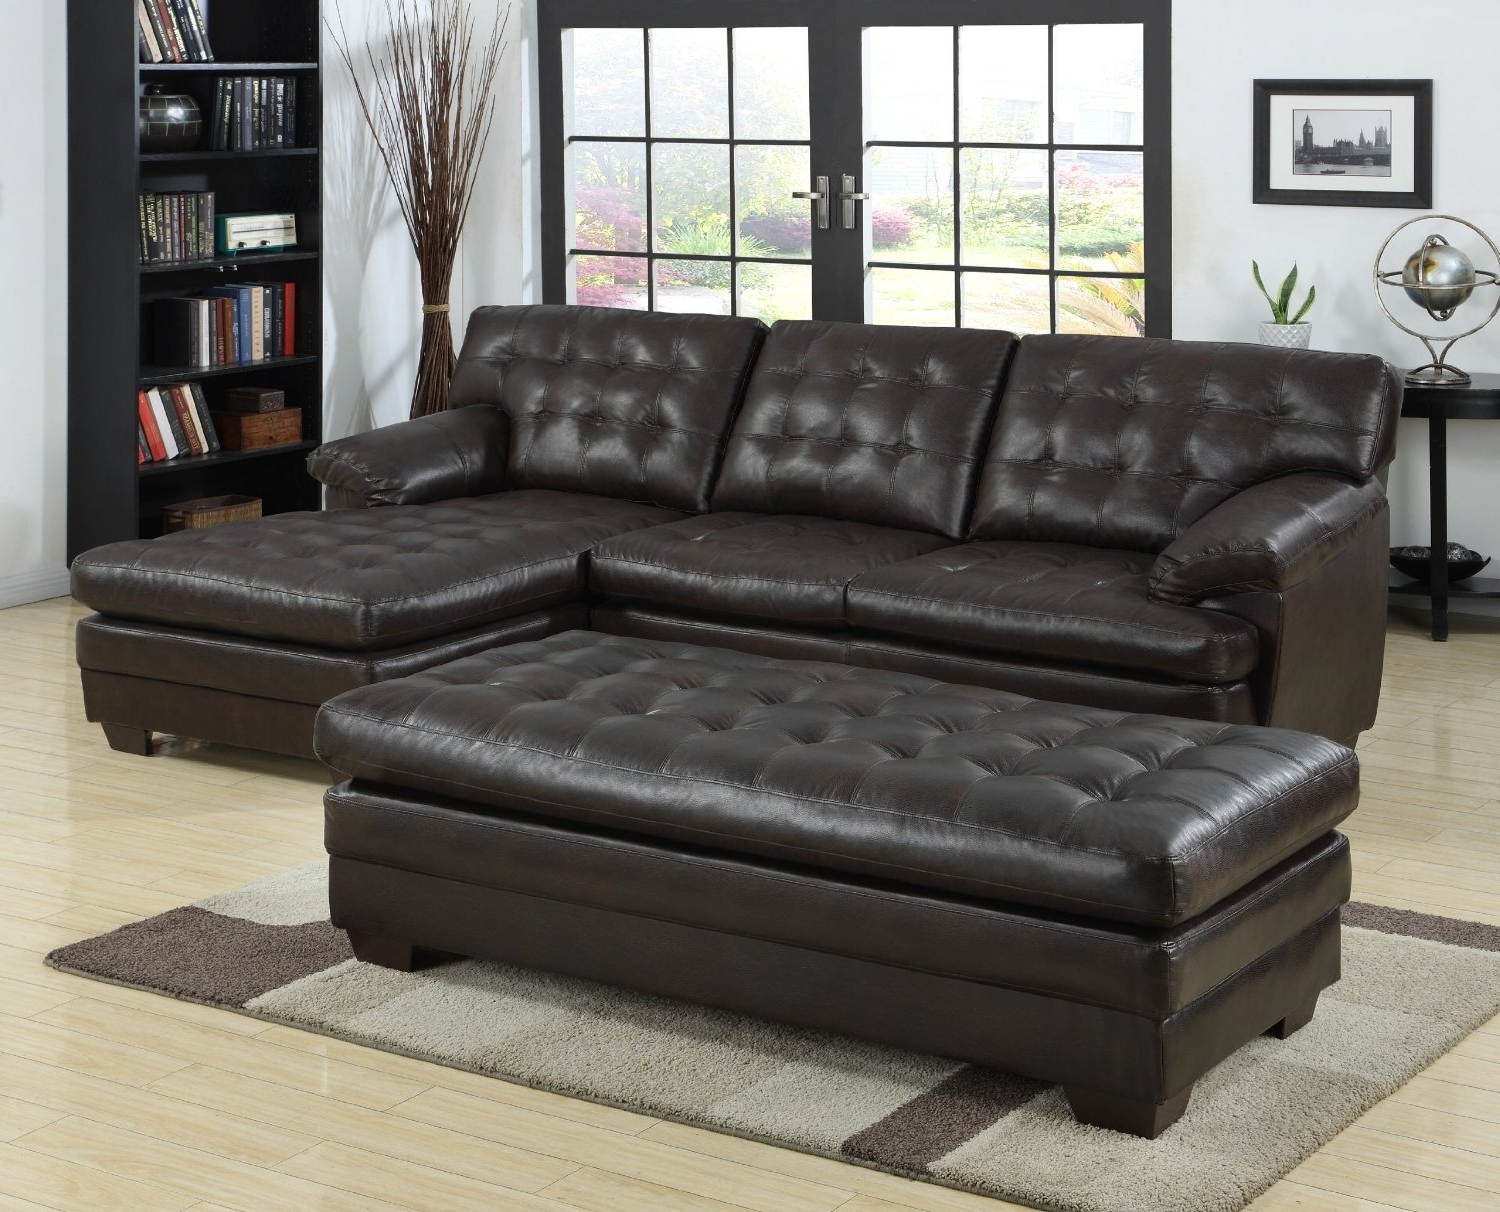 Black Tufted Leather Sectional Sofa With Chaise And Bench Seat Regarding Recent Sofas With Chaise And Ottoman (View 1 of 15)